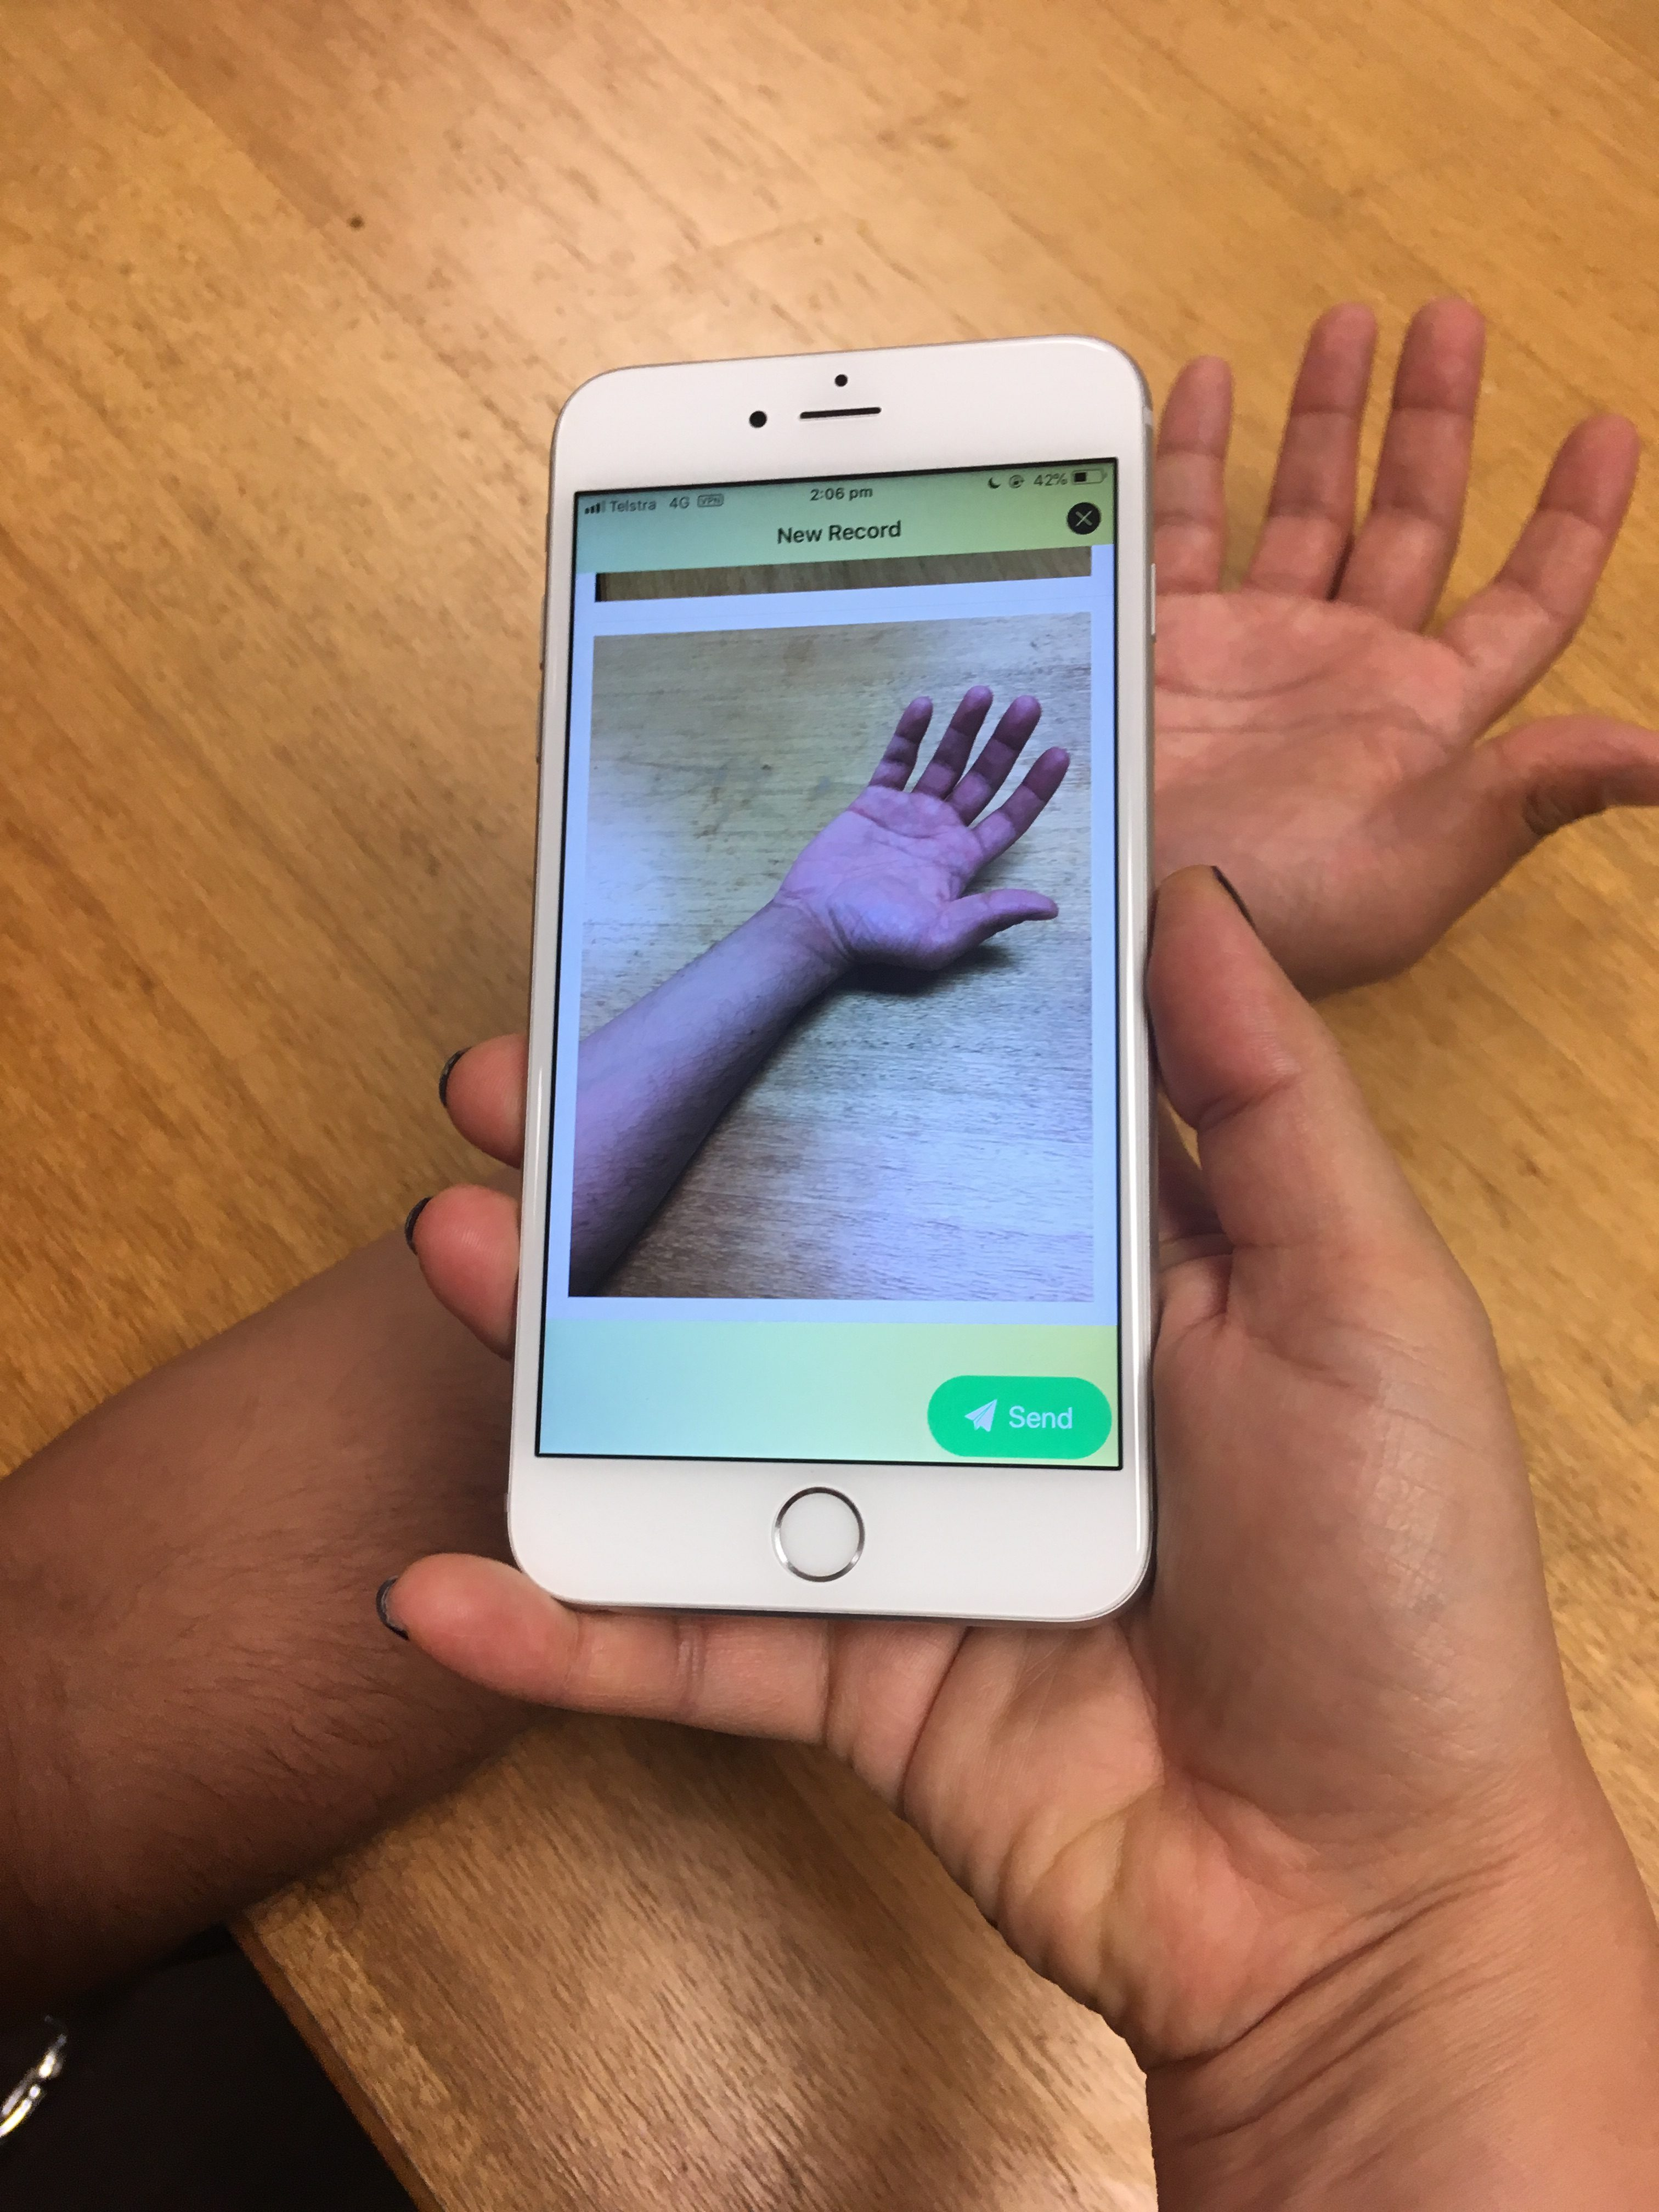 A photo of the MICE app in action: a mobile phone is used to take a photo of a person's burned hand.